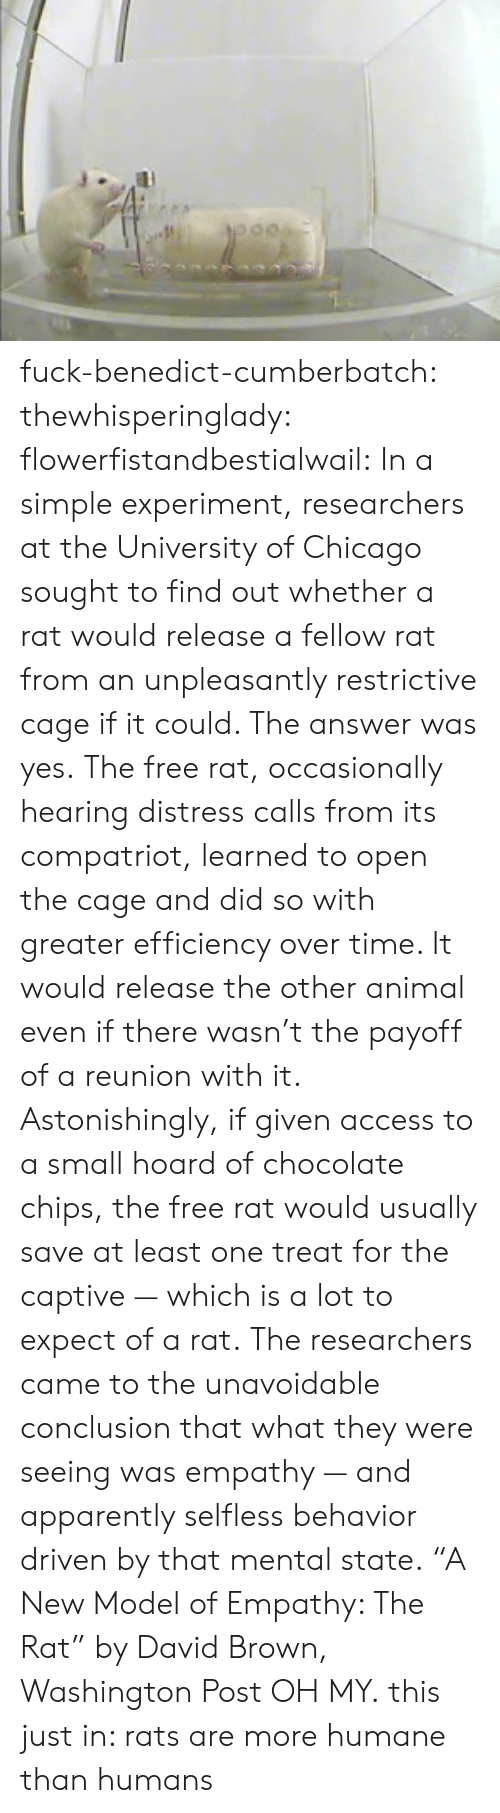 """This Just In: fuck-benedict-cumberbatch:   thewhisperinglady:  flowerfistandbestialwail:   In a simple experiment, researchers at the University of Chicago sought to find out whether a rat would release a fellow rat from an unpleasantly restrictive cage if it could. The answer was yes. The free rat, occasionally hearing distress calls from its compatriot, learned to open the cage and did so with greater efficiency over time. It would release the other animal even if there wasn't the payoff of a reunion with it. Astonishingly, if given access to a small hoard of chocolate chips, the free rat would usually save at least one treat for the captive — which is a lot to expect of a rat. The researchers came to the unavoidable conclusion that what they were seeing was empathy — and apparently selfless behavior driven by that mental state. """"A New Model of Empathy: The Rat"""" by David Brown, Washington Post   OH MY.  this just in: rats are more humane than humans"""